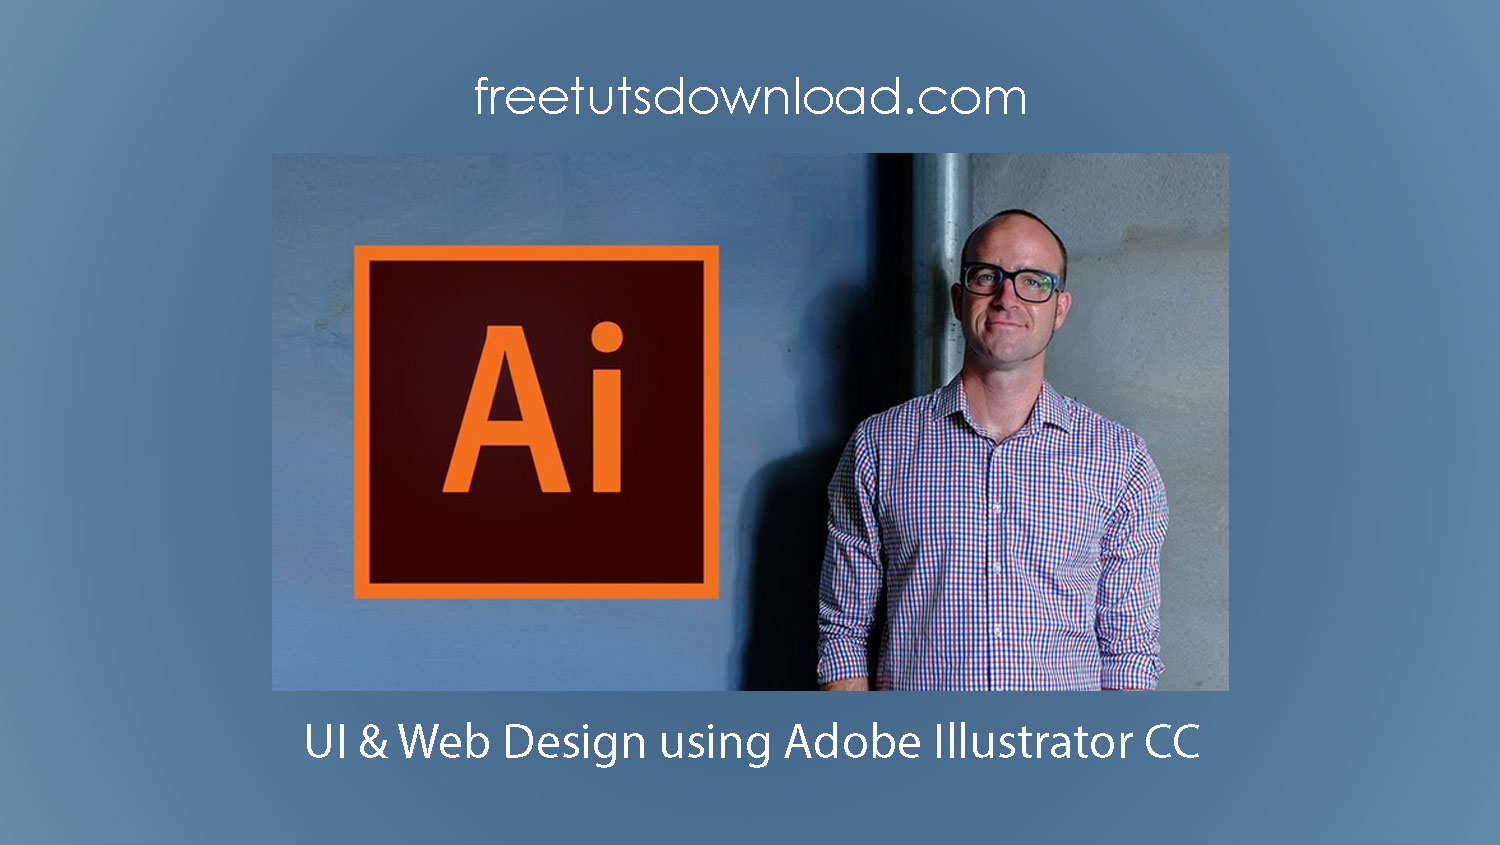 UI & Web Design using Adobe Illustrator CC free Download